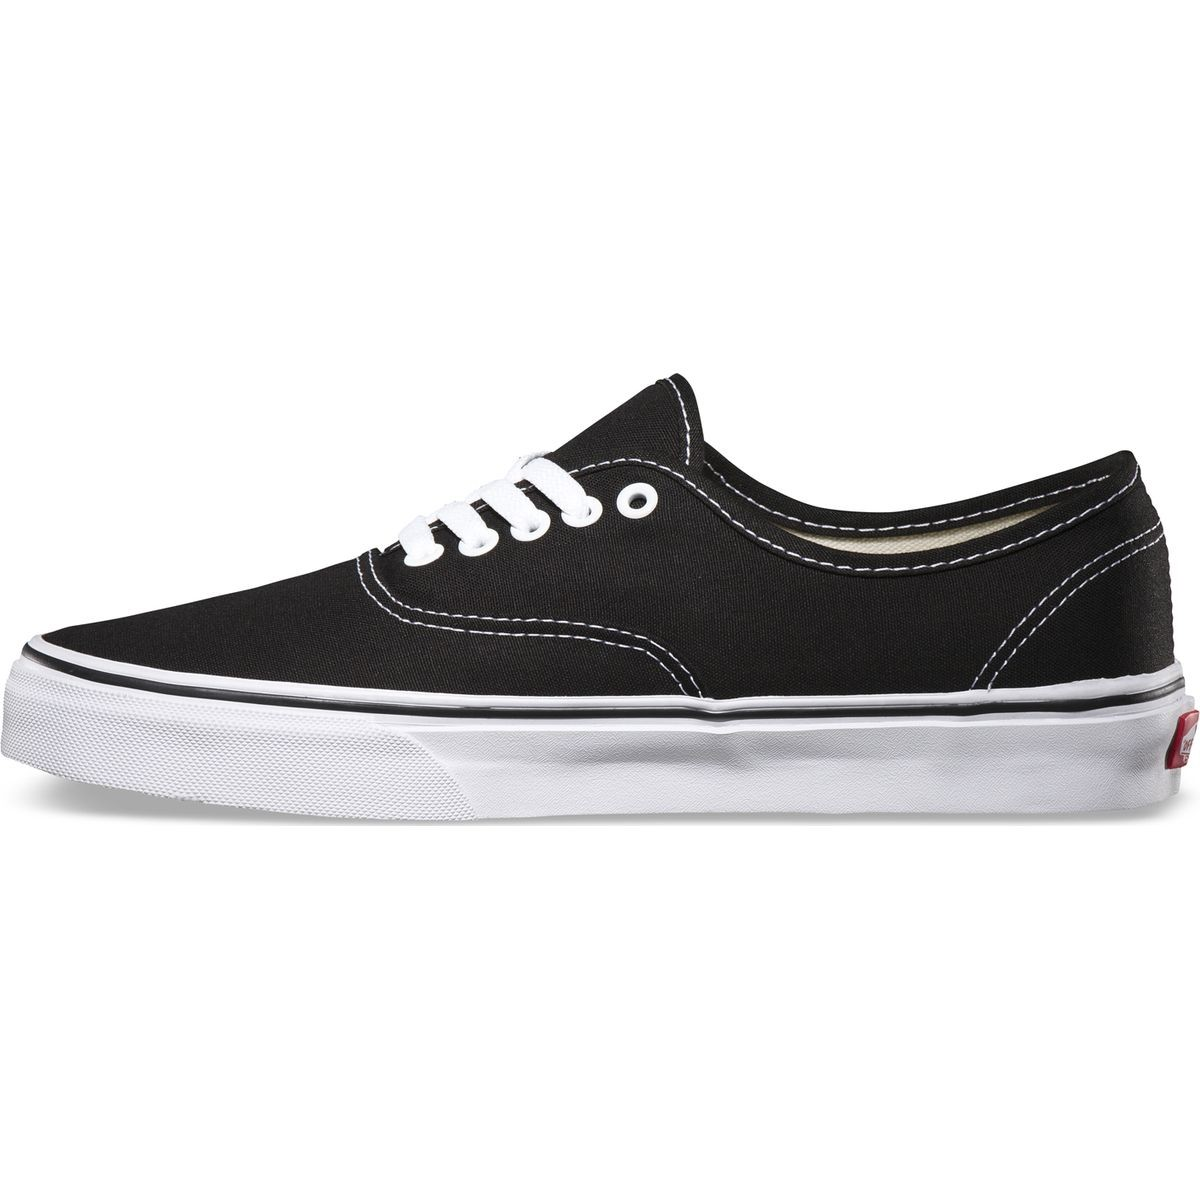 9c165e092c2 Vans Original Authentic Shoes - Black - 7.0